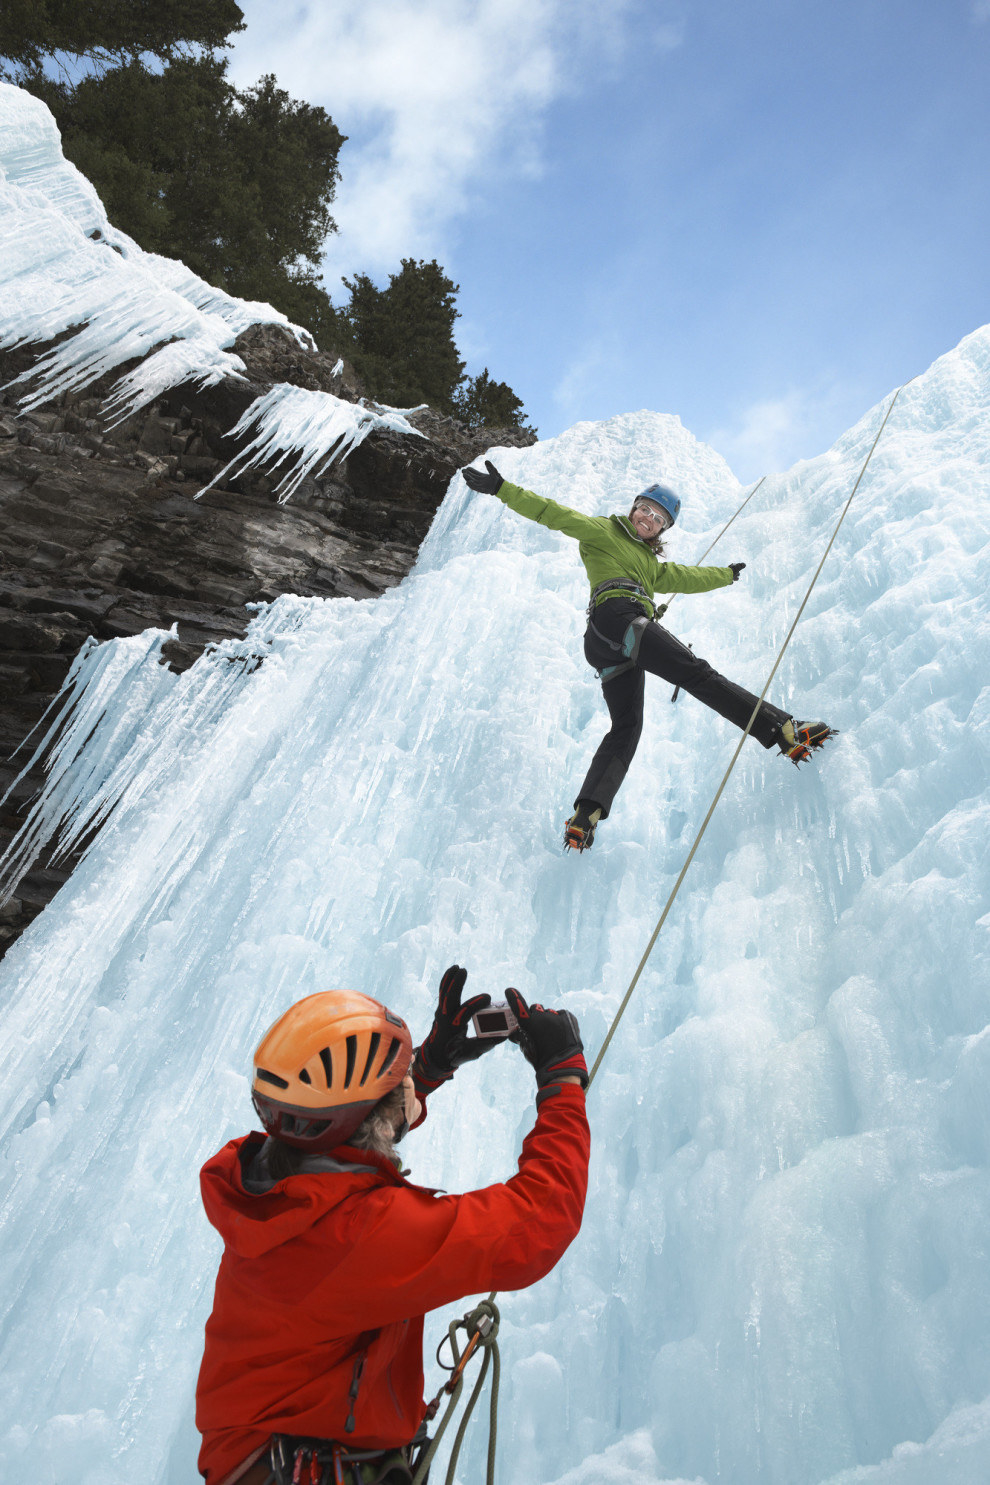 Reach new heights by taking ice climbing lessons in the Canadian Rockies.